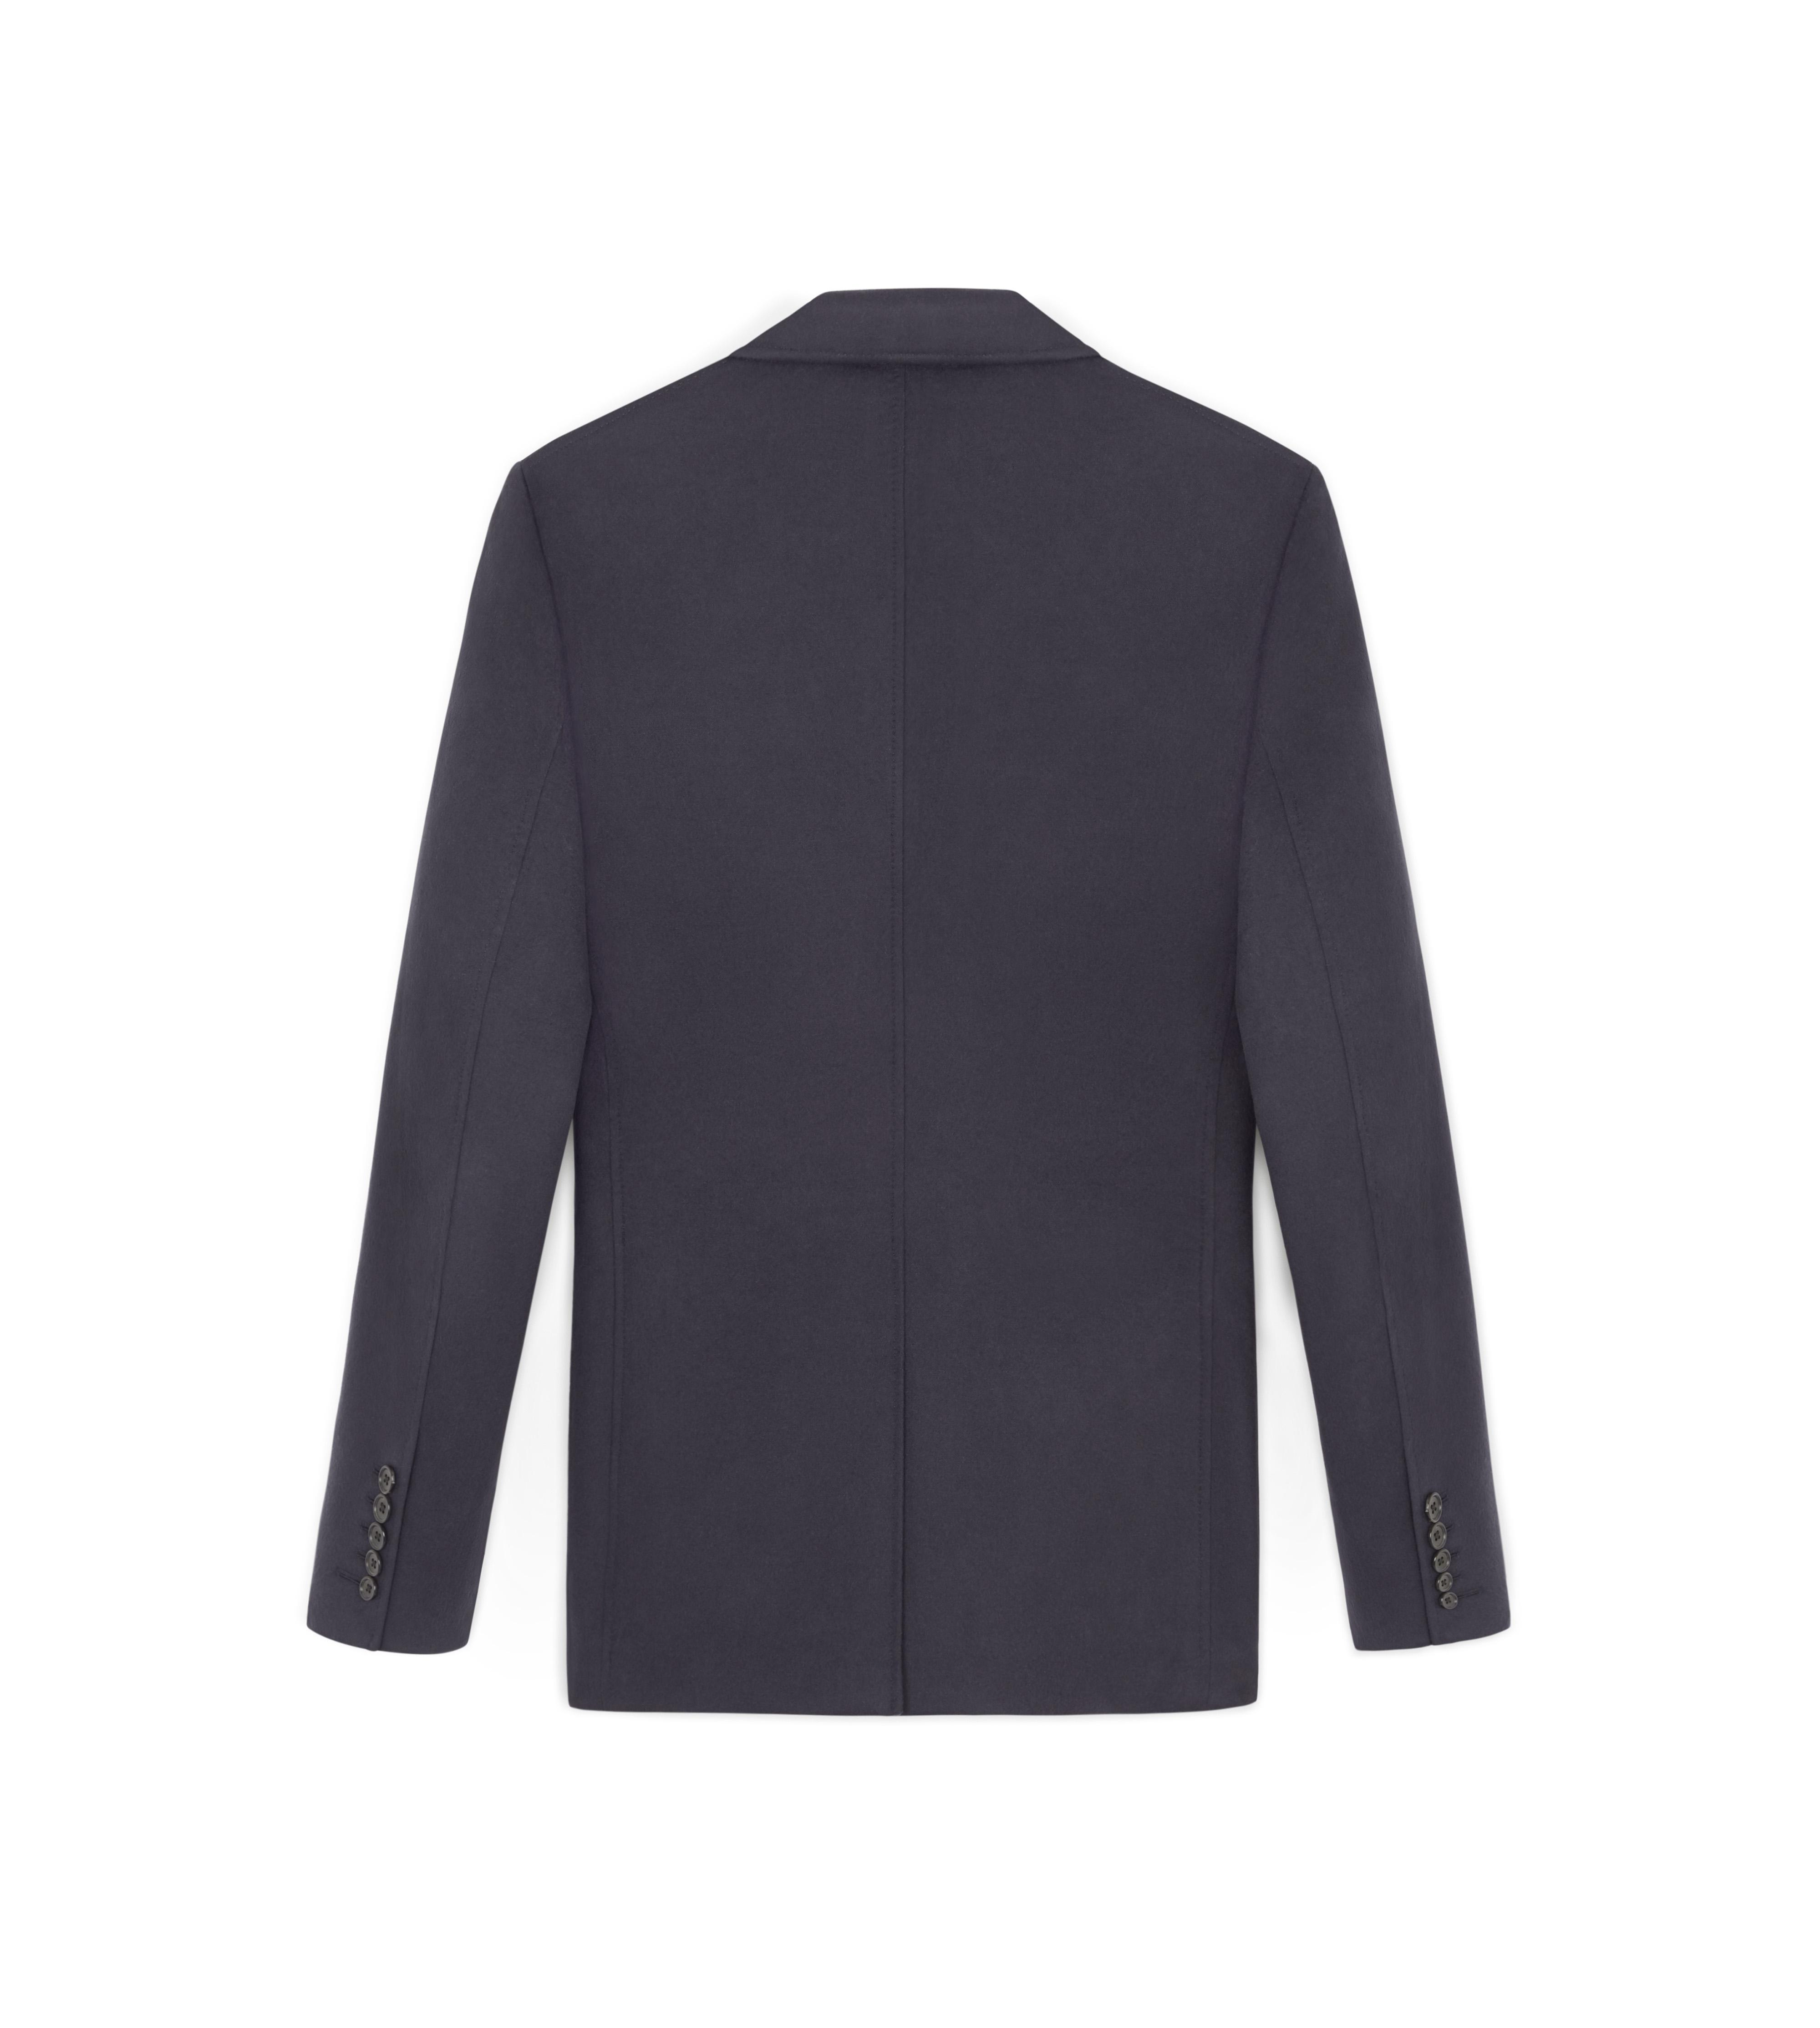 NAVY BRUSHED CASHMERE SHELTON SPORT JACKET B thumbnail